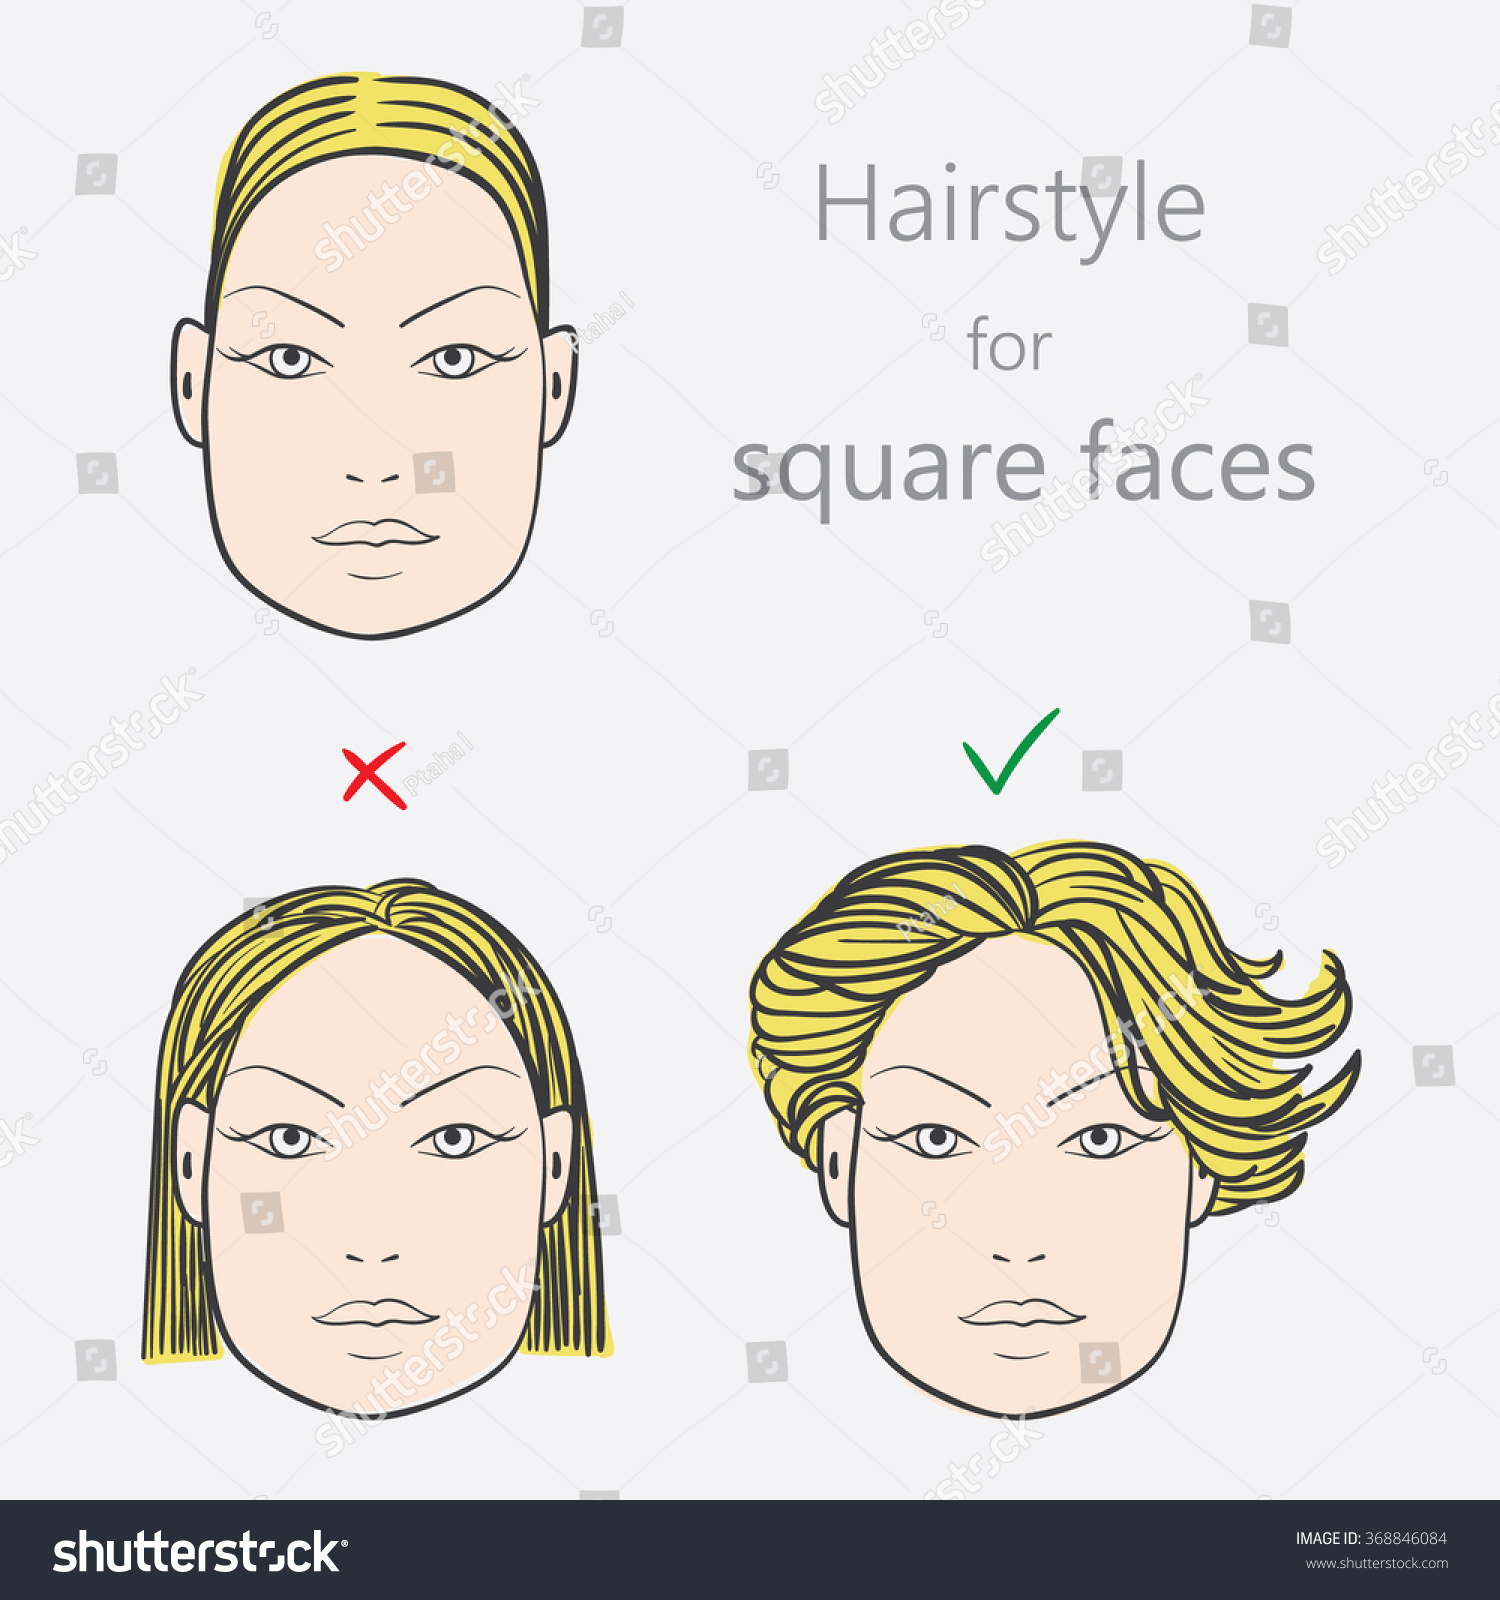 Square Face Shape Hairstyles Face Shape Alternative Hairstyles Square Face Stock Vector